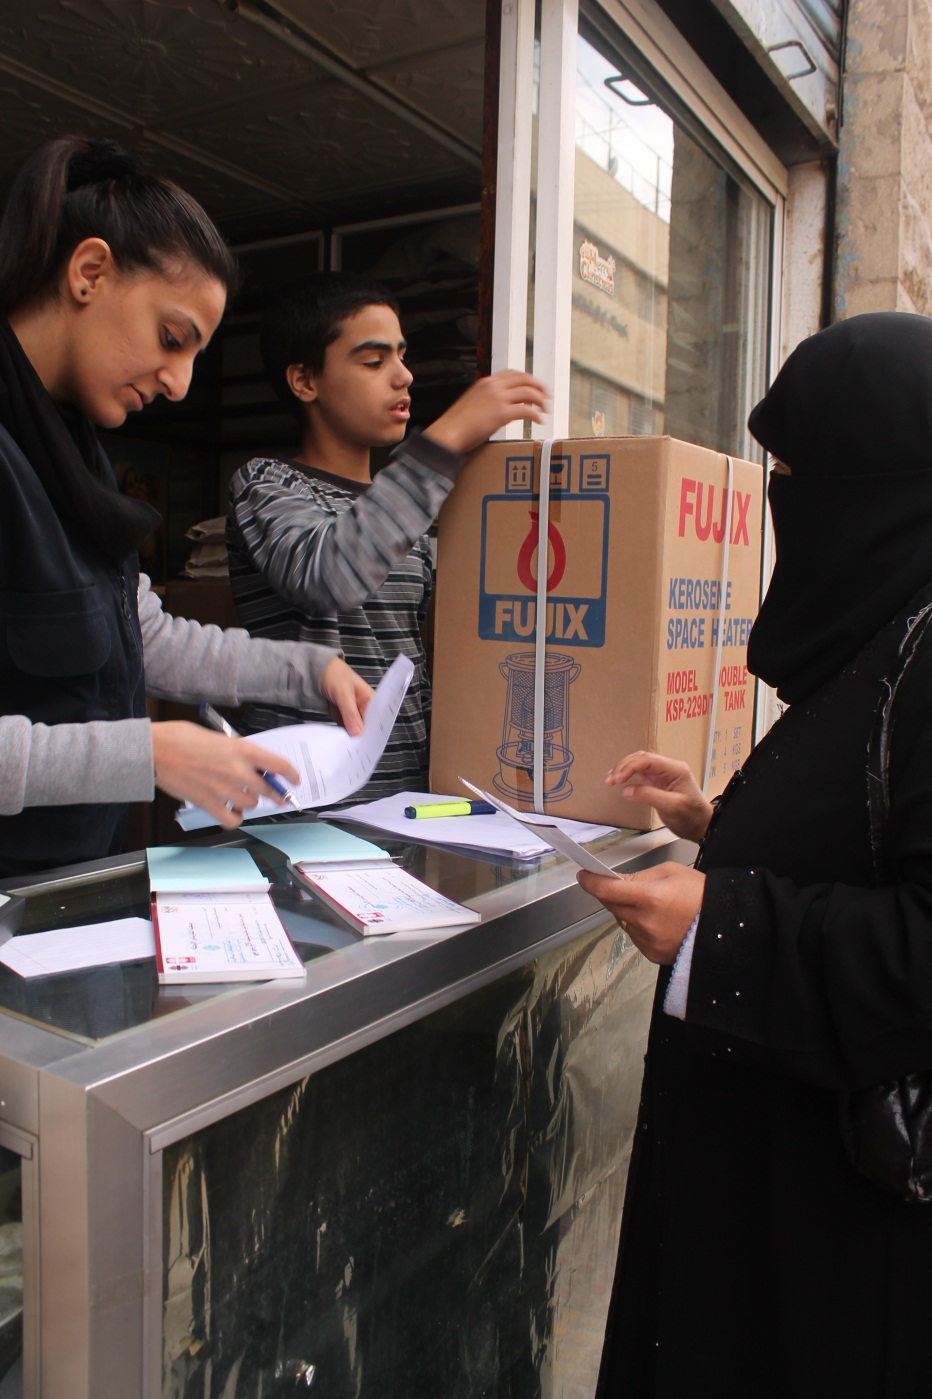 Manal Ahmad, a 30-year old Syrian refugee, using the vouchers she received from Caritas Jordan. Photo by Caritas Jordan